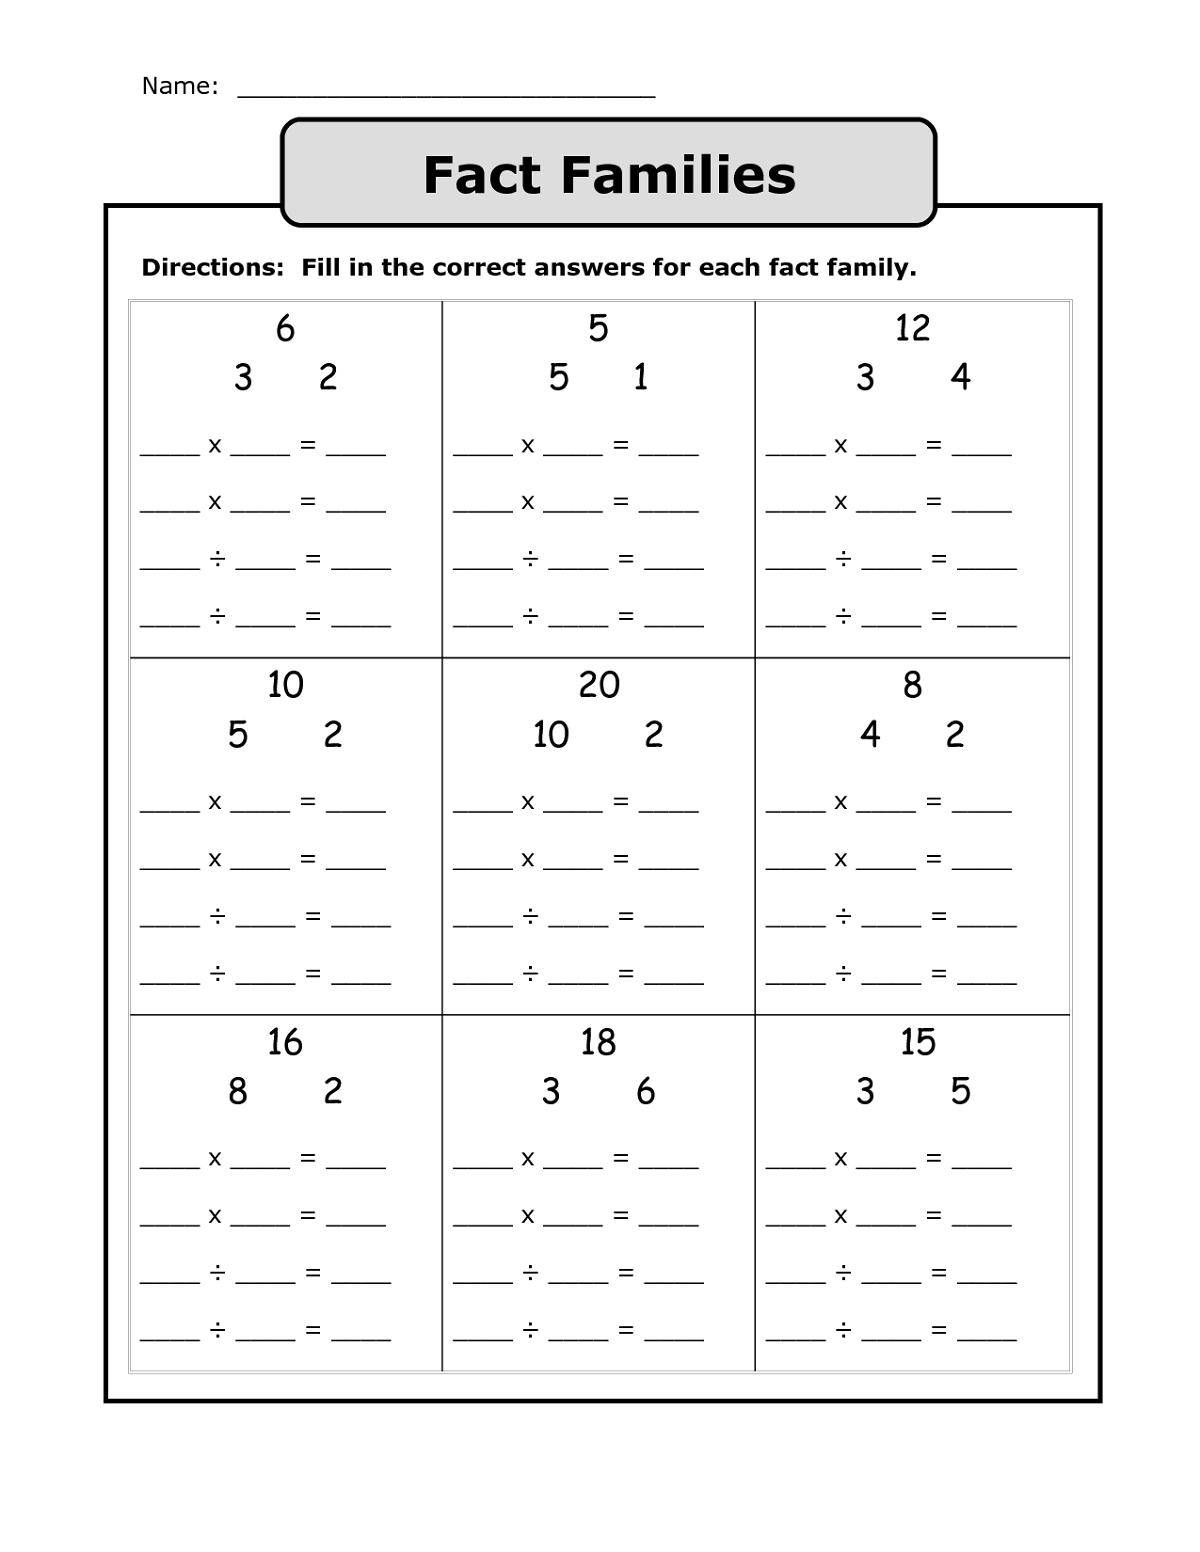 Fact Families Worksheet For Elementary School